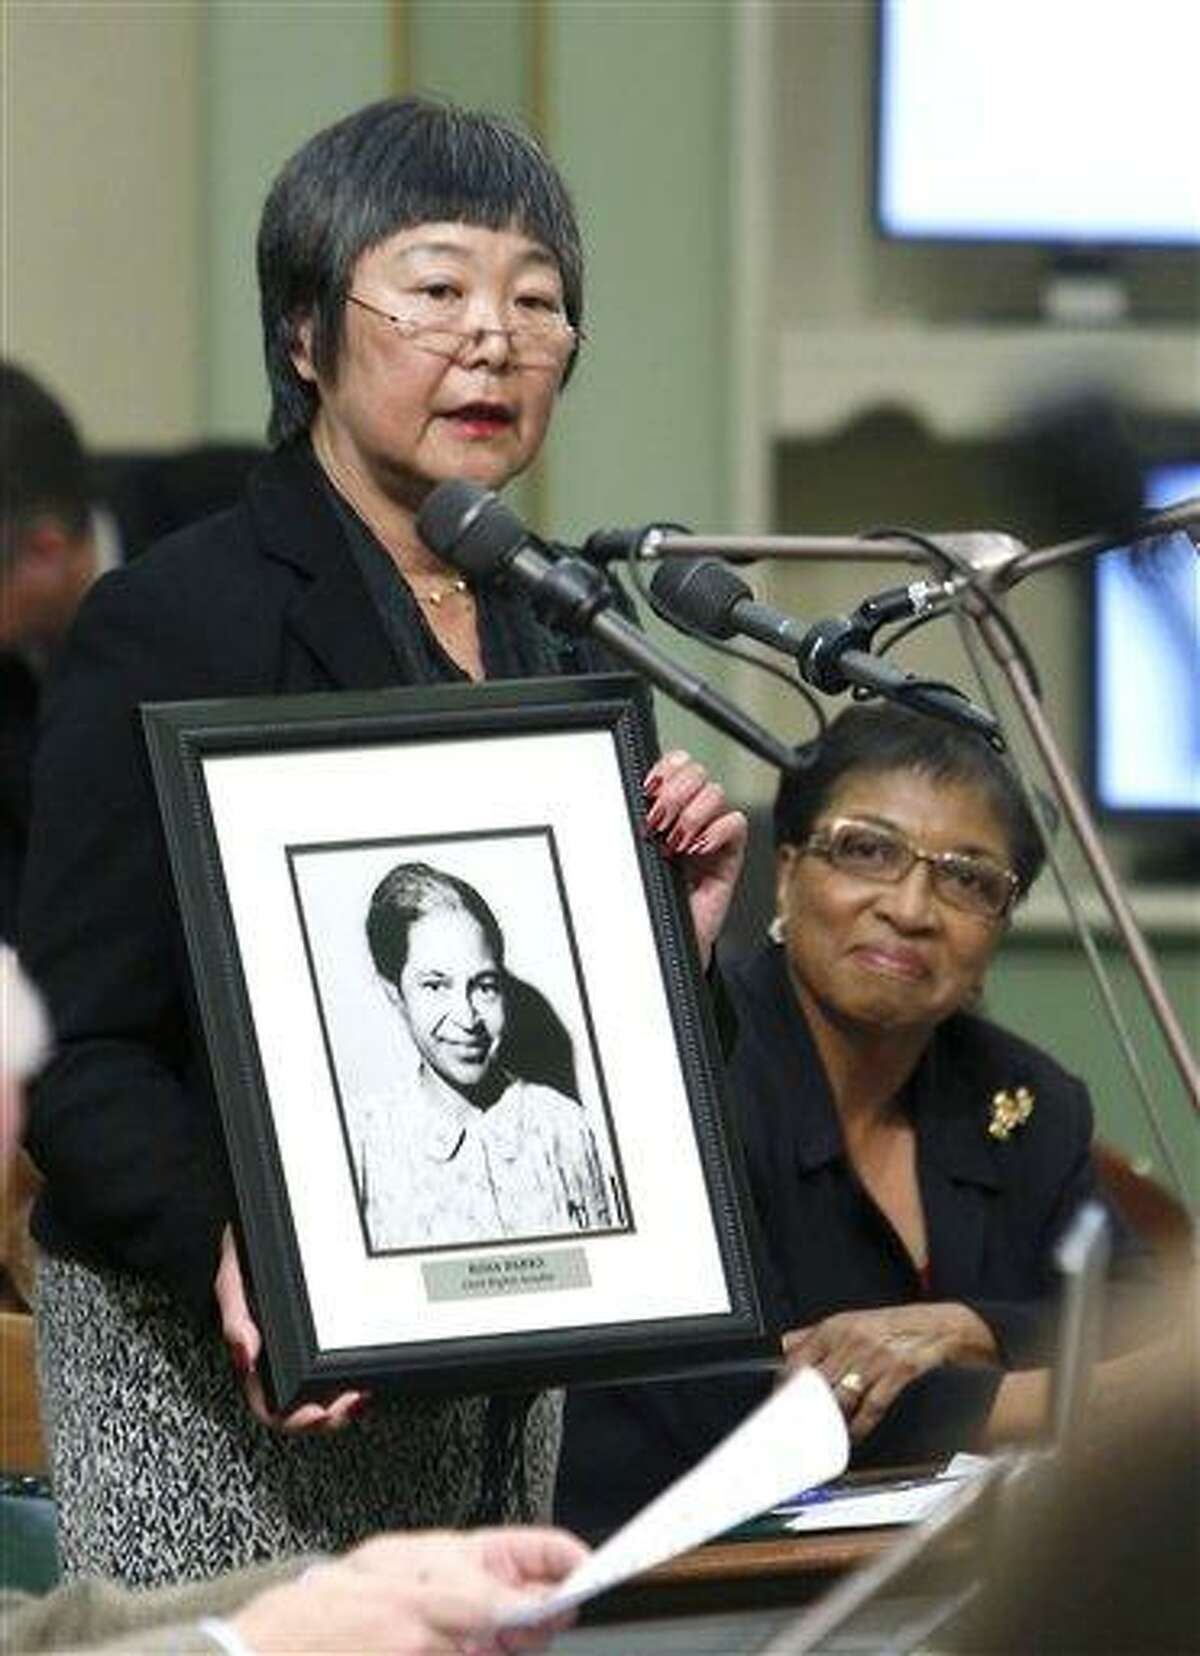 Assemblywoman Mariko Yamada, D-Davis, holds a photo of the late Civil Rights activist Rosa Parks while calling for passage of her Assembly Resolution honoring Parks during Black History Month ceremonies at the Capitol in Sacramento, Calif., Monday, Feb. 4. 2013. On what would have been her 100th birthday, the Assembly approved the resolution for Parks who became one of the enduring figures of the Civil Rights movement when she refused to cede her seat to a white man on a Montgomery, Ala. bus in 1955. Parks died in 2005. (AP Photo/Rich Pedroncelli)